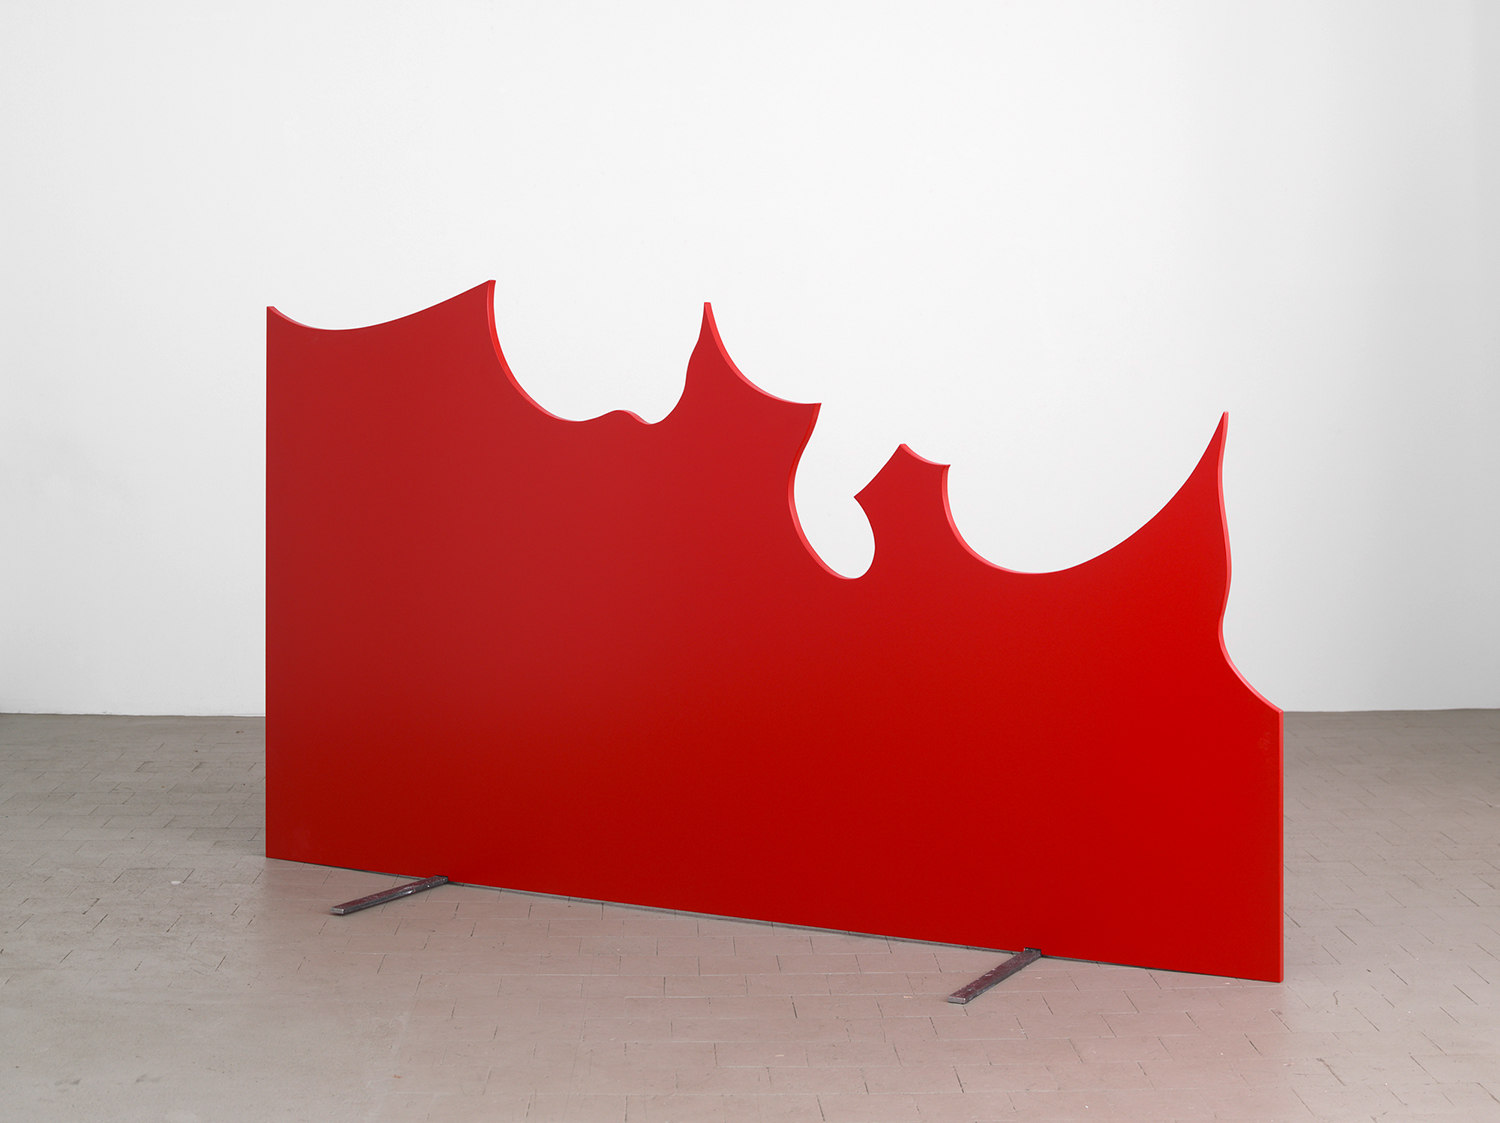 Untitled (Alice), 2009, MDF, Lacquer, Steel, 140 x 250 x 2,8 cm